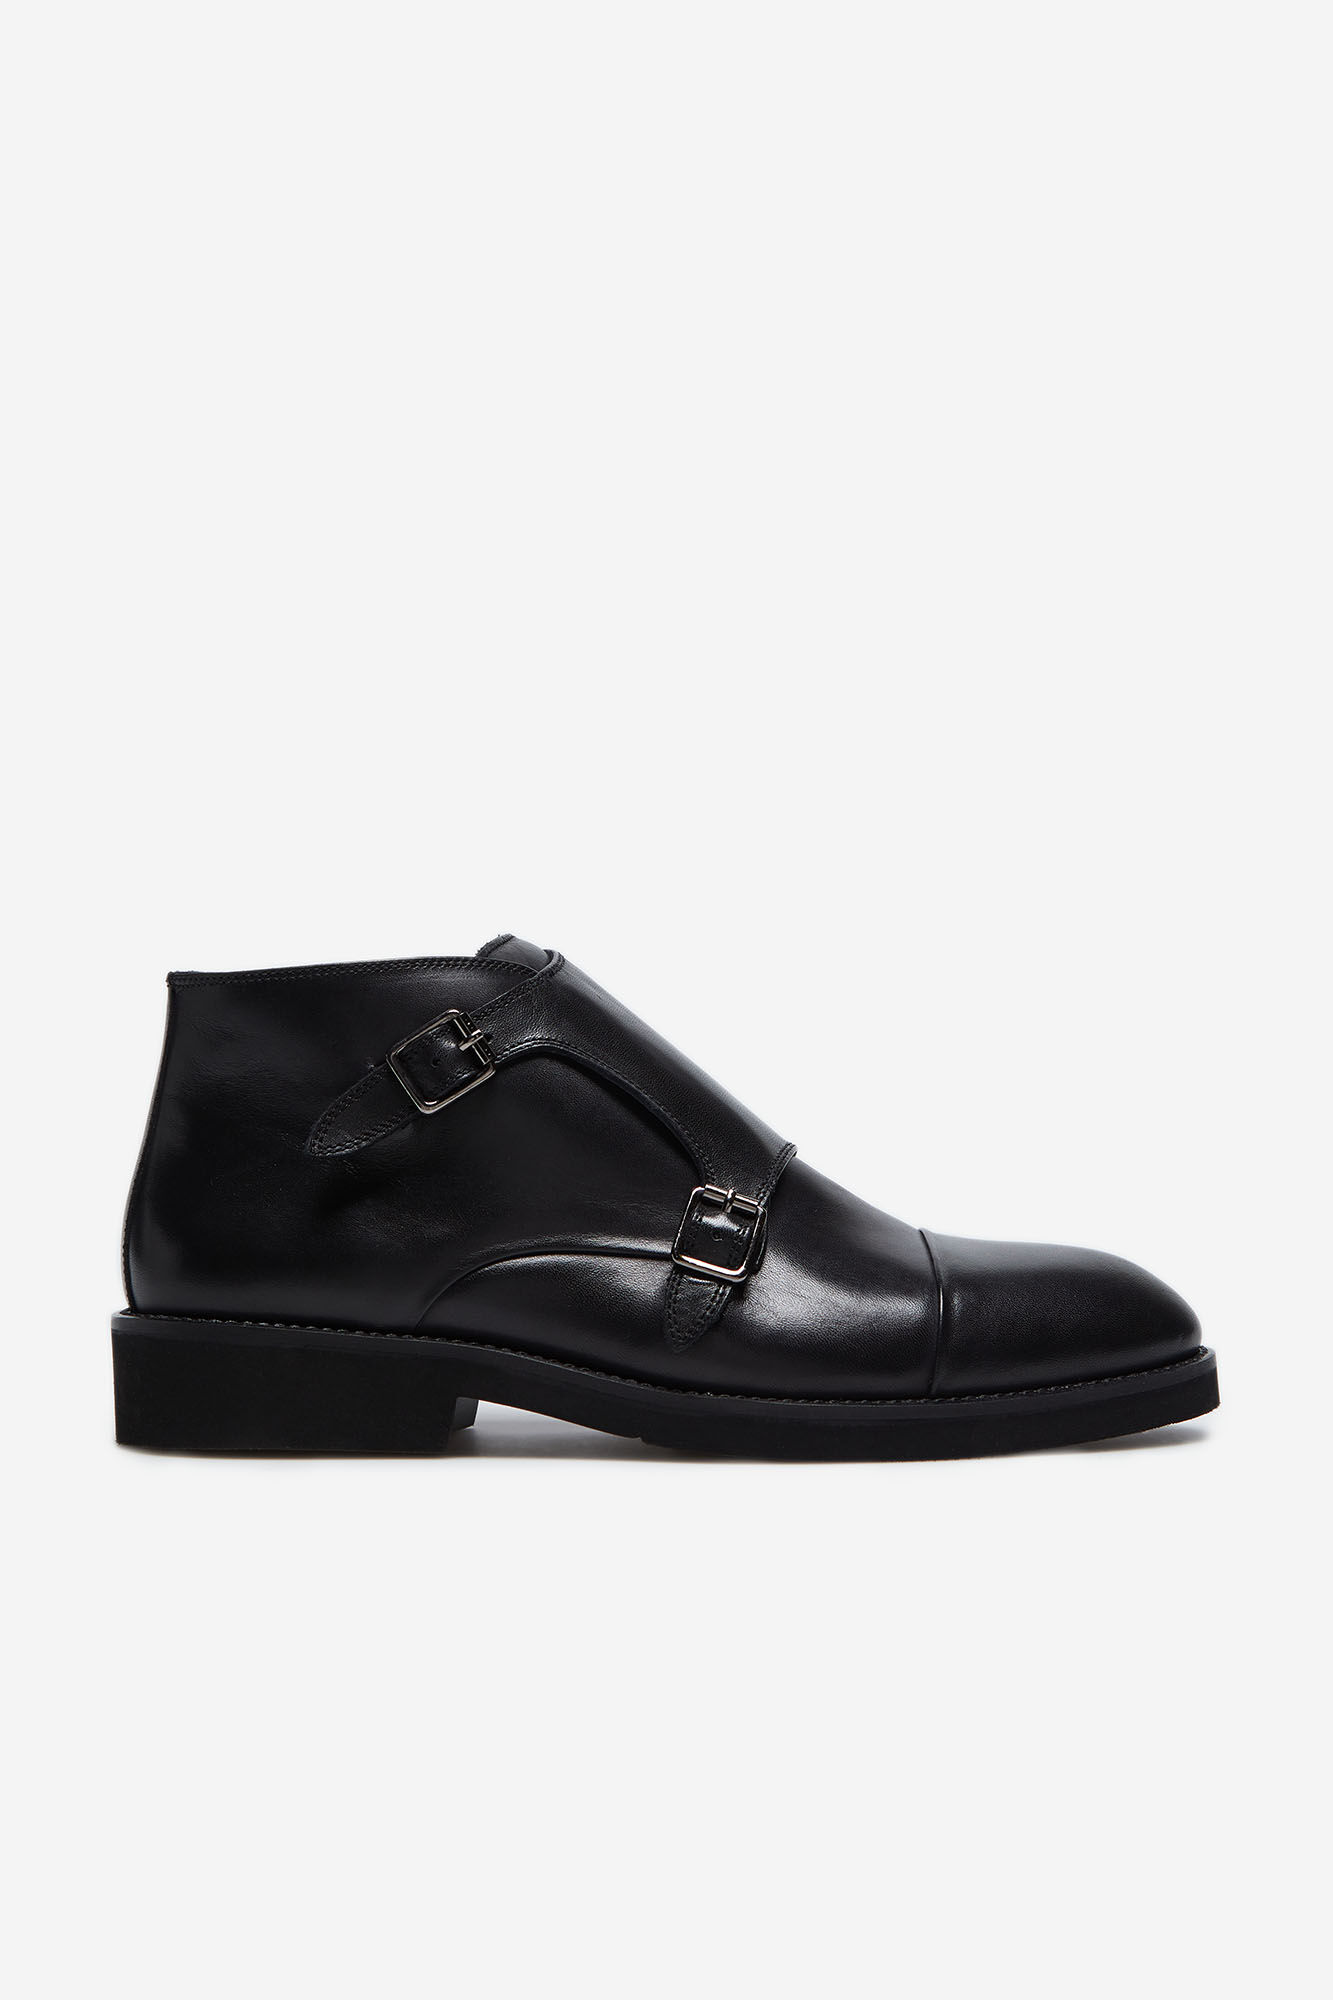 Men's Shoes | Cortefiel